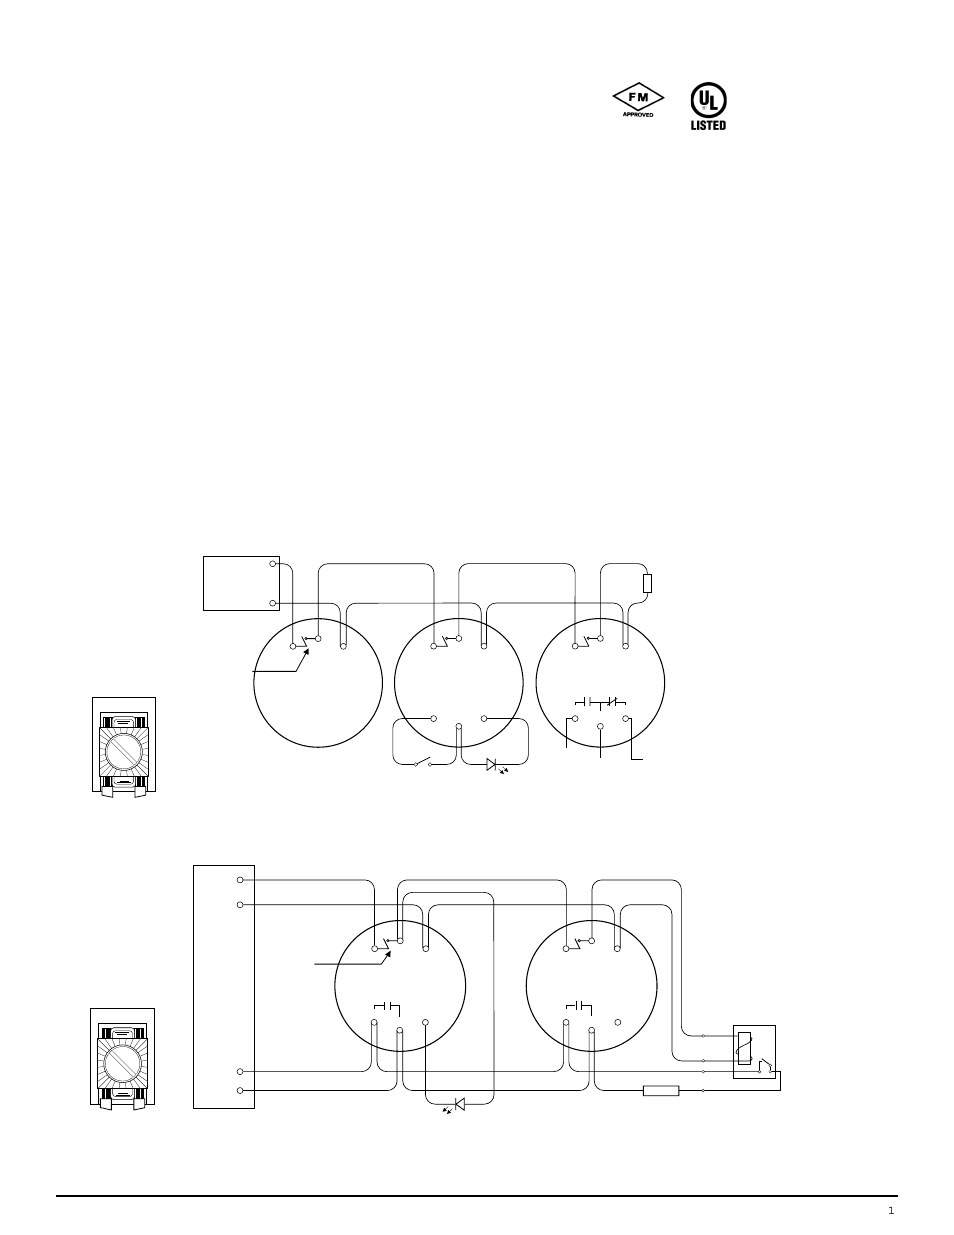 hight resolution of edwards signaling esl 700 series user manual 4 pages rh manualsdir com simplex smoke detector wiring diagrams hvac smoke detector wiring